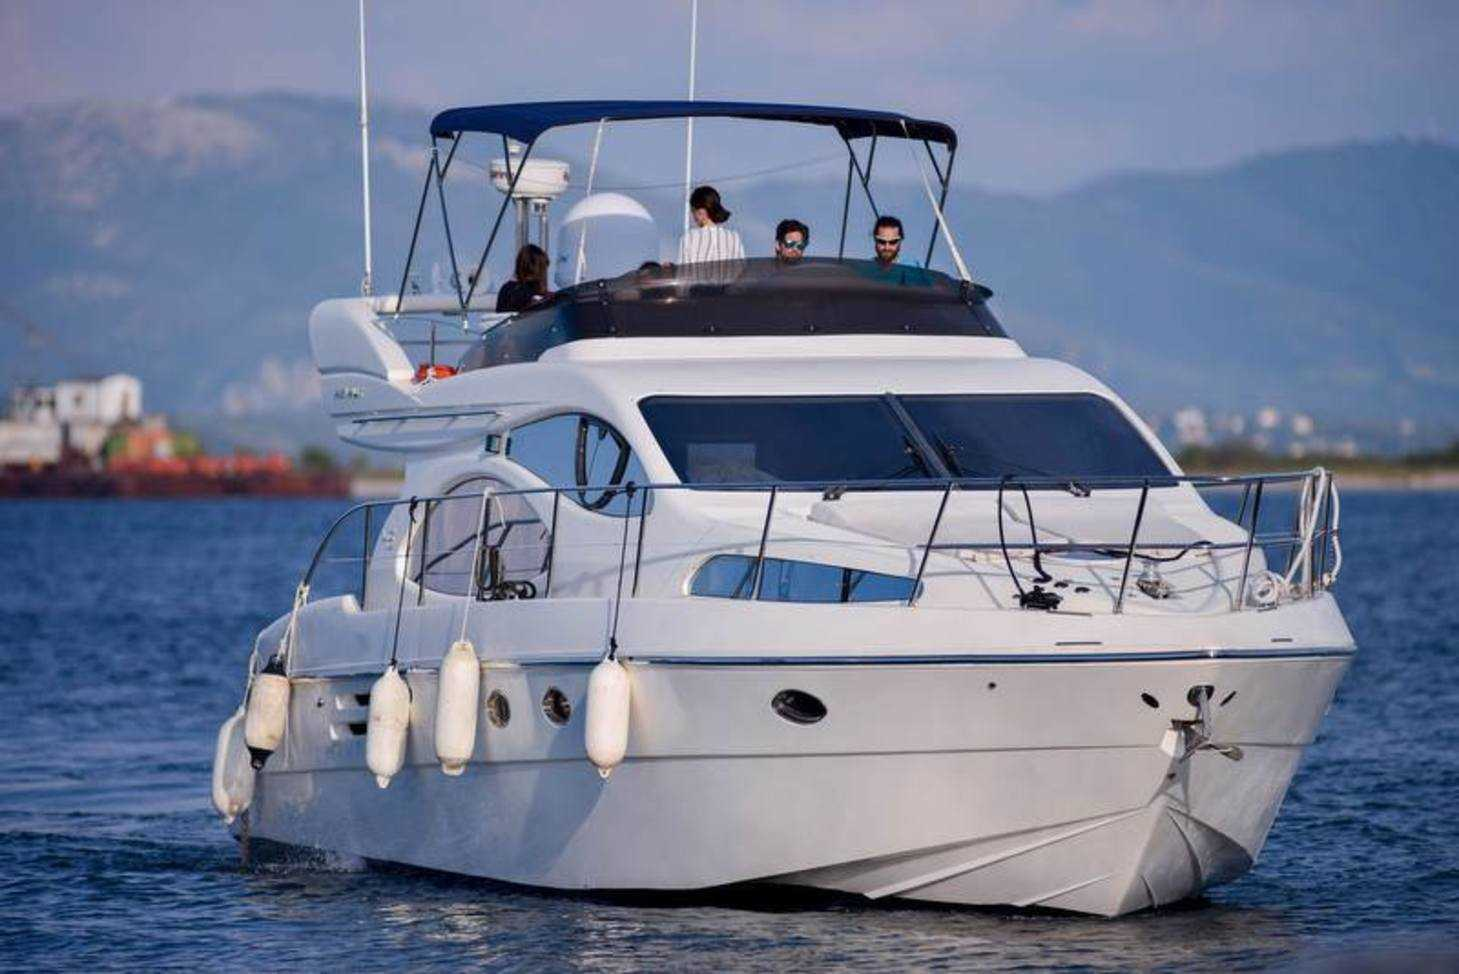 Yacht Badezimmer Offers Luxury Motor Yacht Available For Daily Charters In Ionian